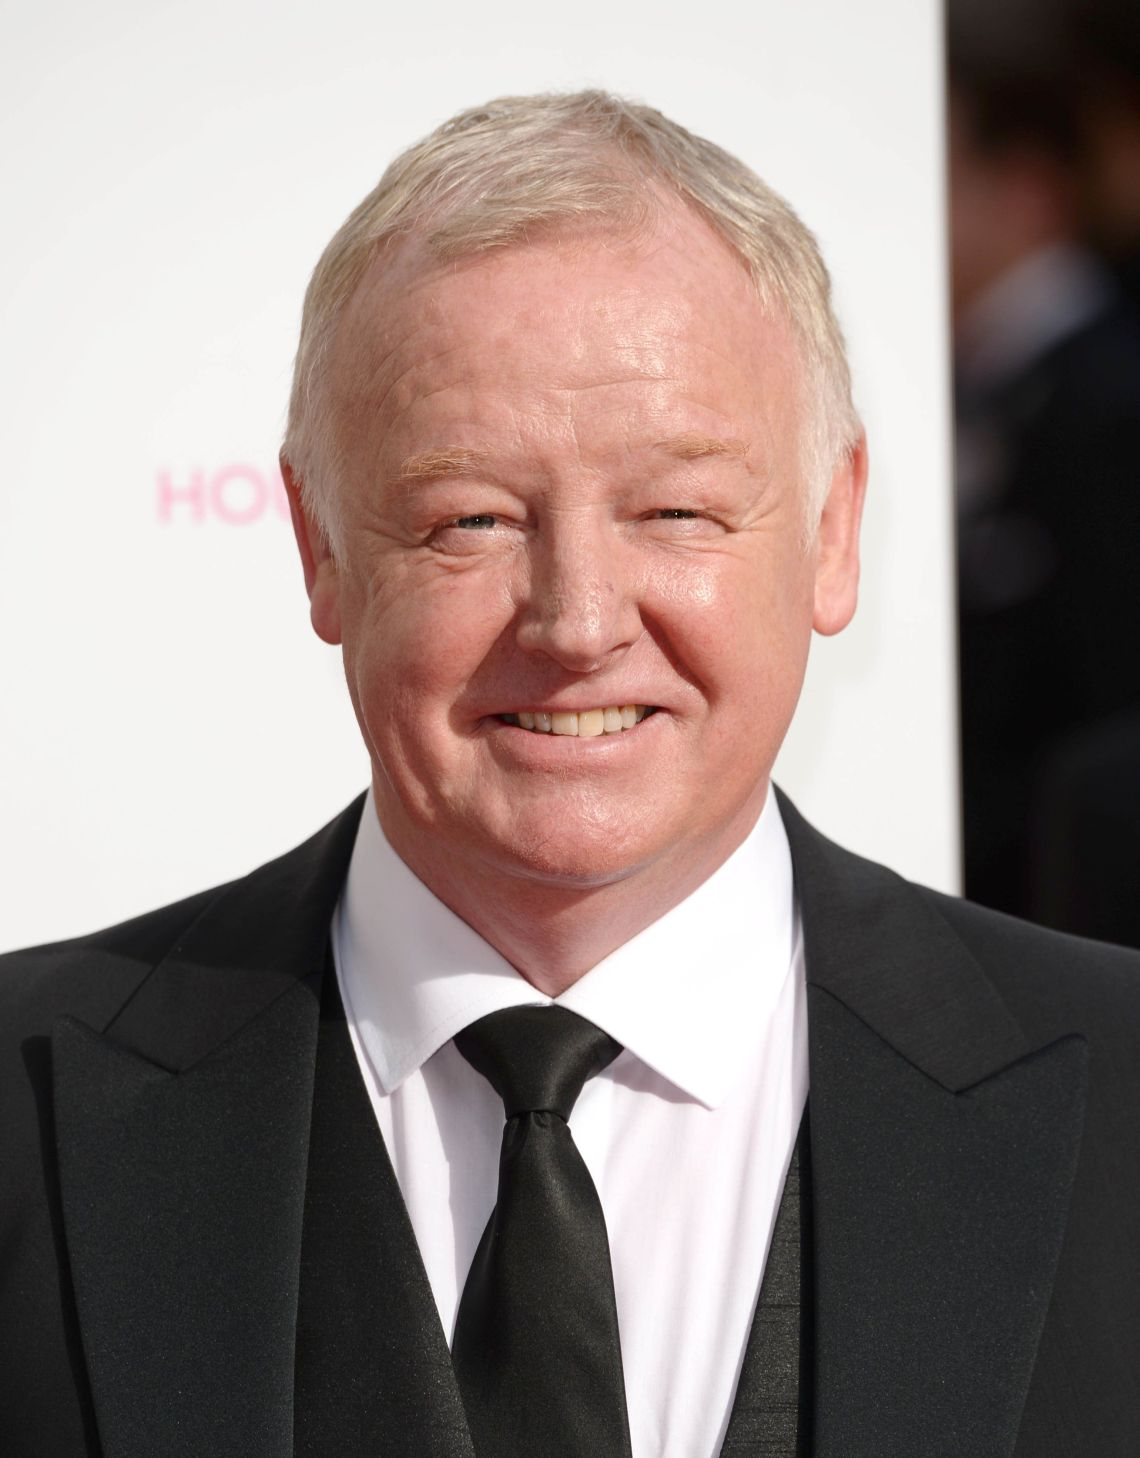 """The former 'Coronation Street' actor has hinted on more than one occasion that he'd love to appear on 'Strictly'. During an appearance on 'Sunday Brunch' he said: """"When I was doing Coronation Street I was approached but we weren't allowed to do it, we had a policy. I wouldn't mind doing it, I always like a challenge."""